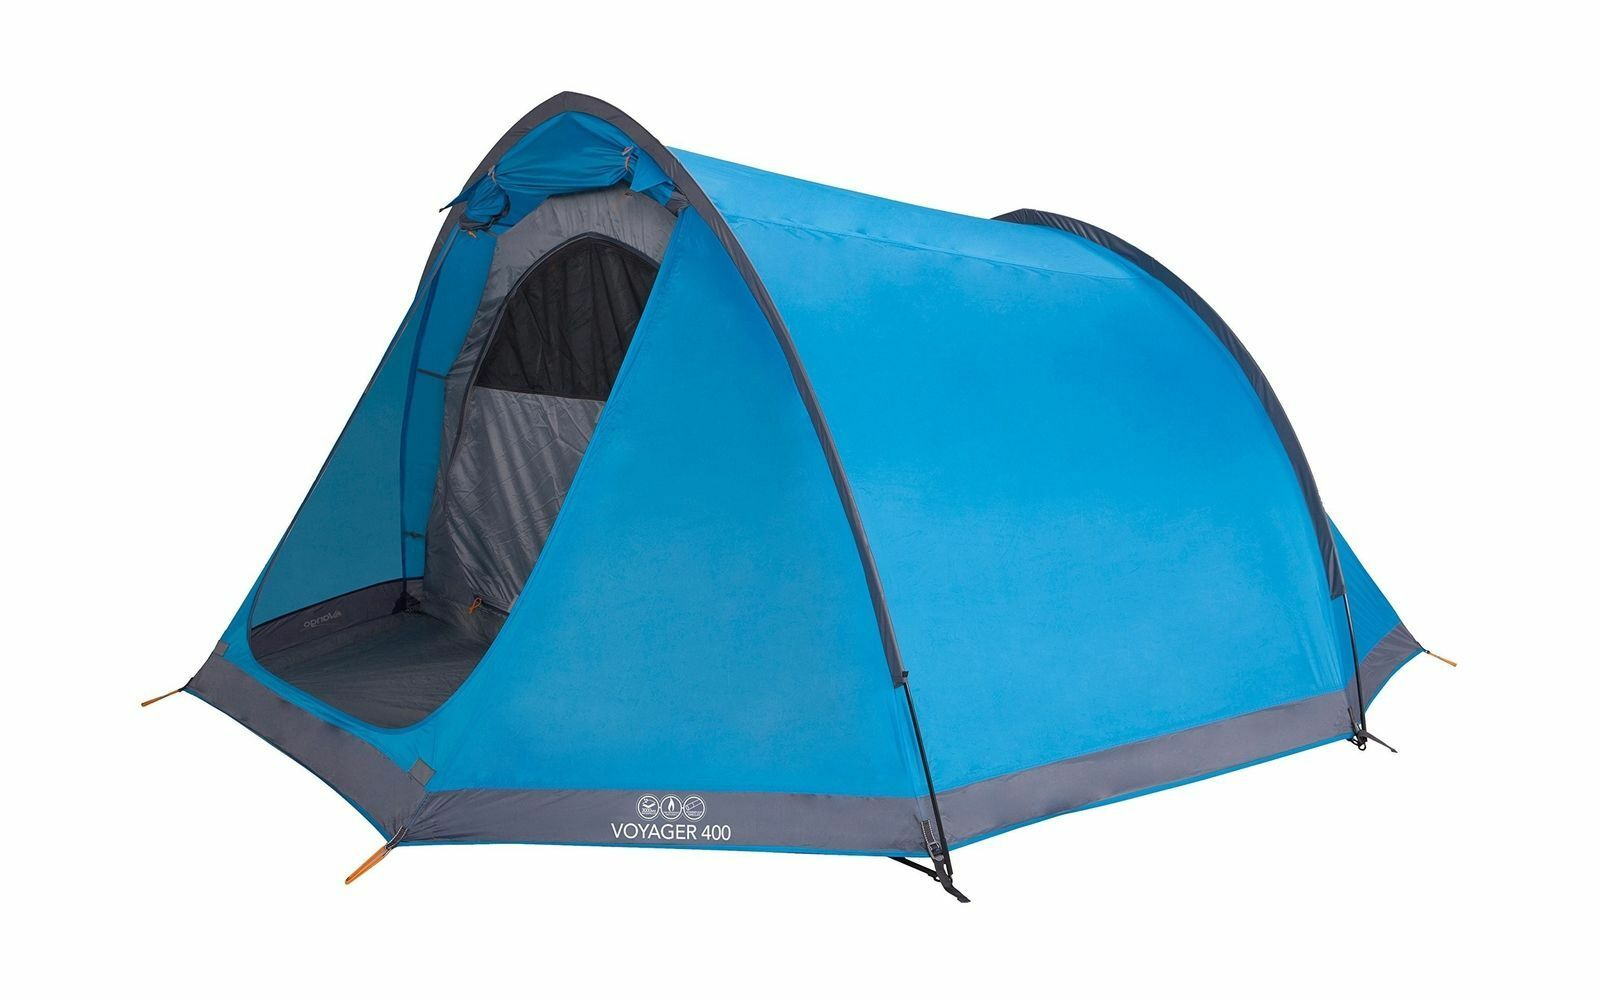 Vango Waterproof Voyager 400 400 400 Unisex Outdoor Tunnel Tent Blau 4 Person BRAND NEW 21dbcc